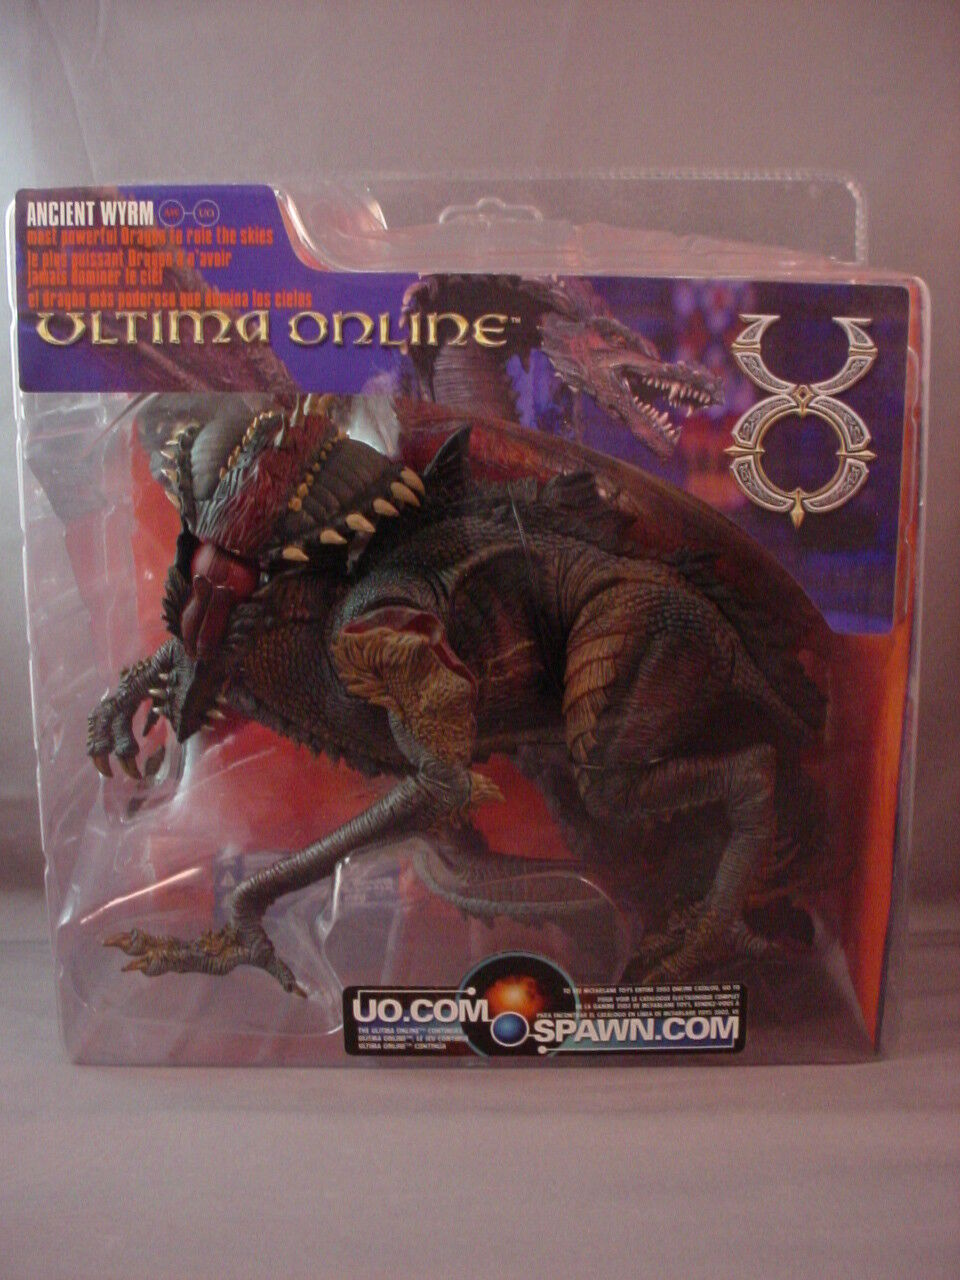 McFARLANE TOYS ULTIMA ONLINE ANCIENT WYRM DRAGON FIGURE SEALED